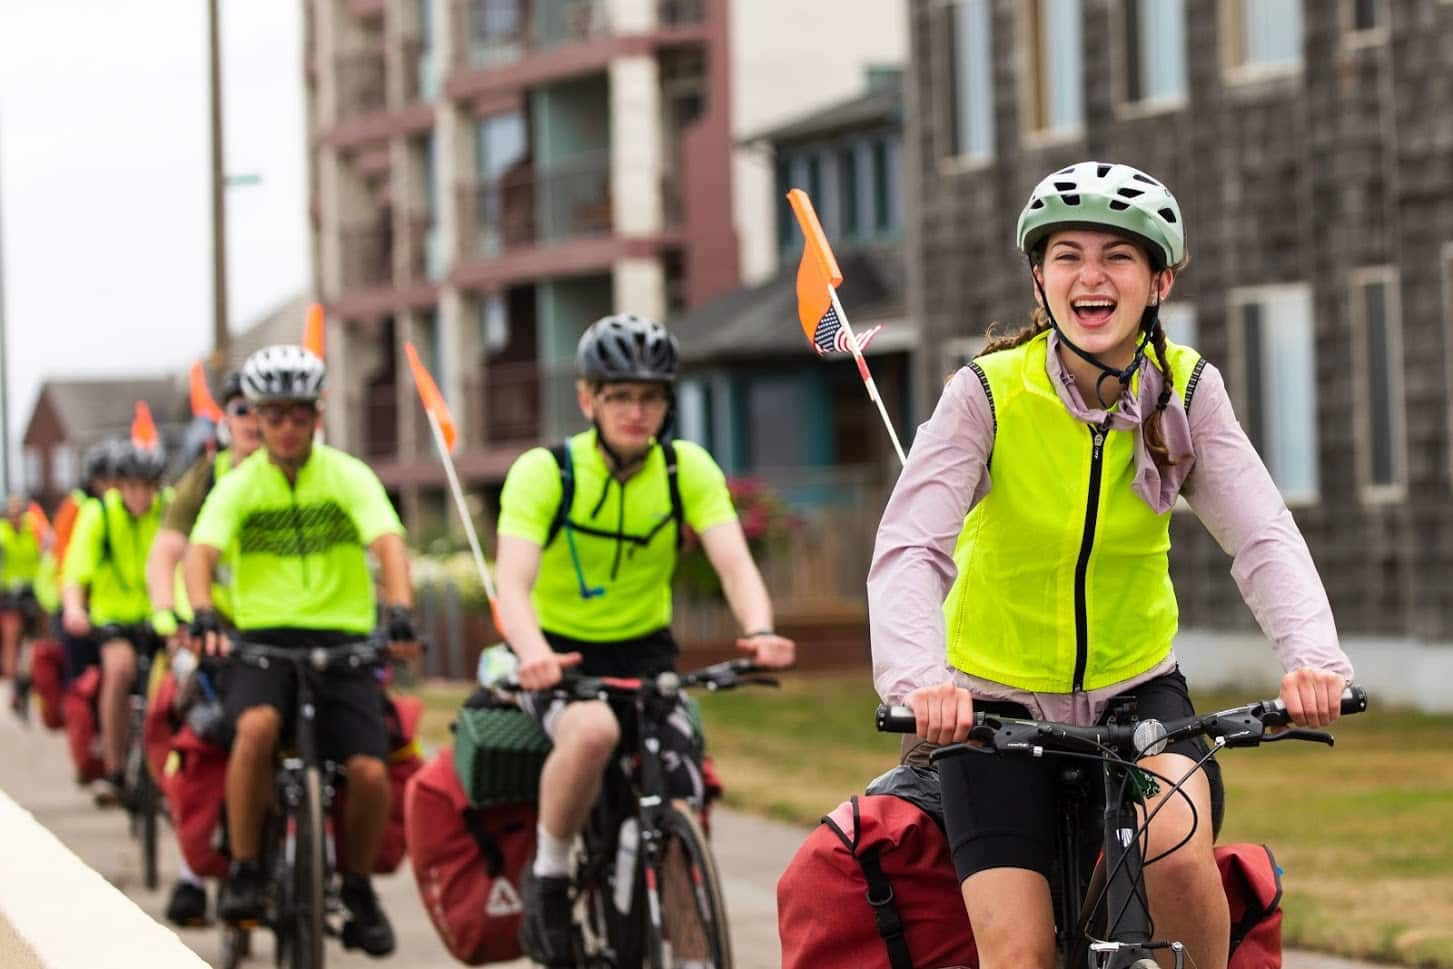 Single file for safety on a teen summer biking trip